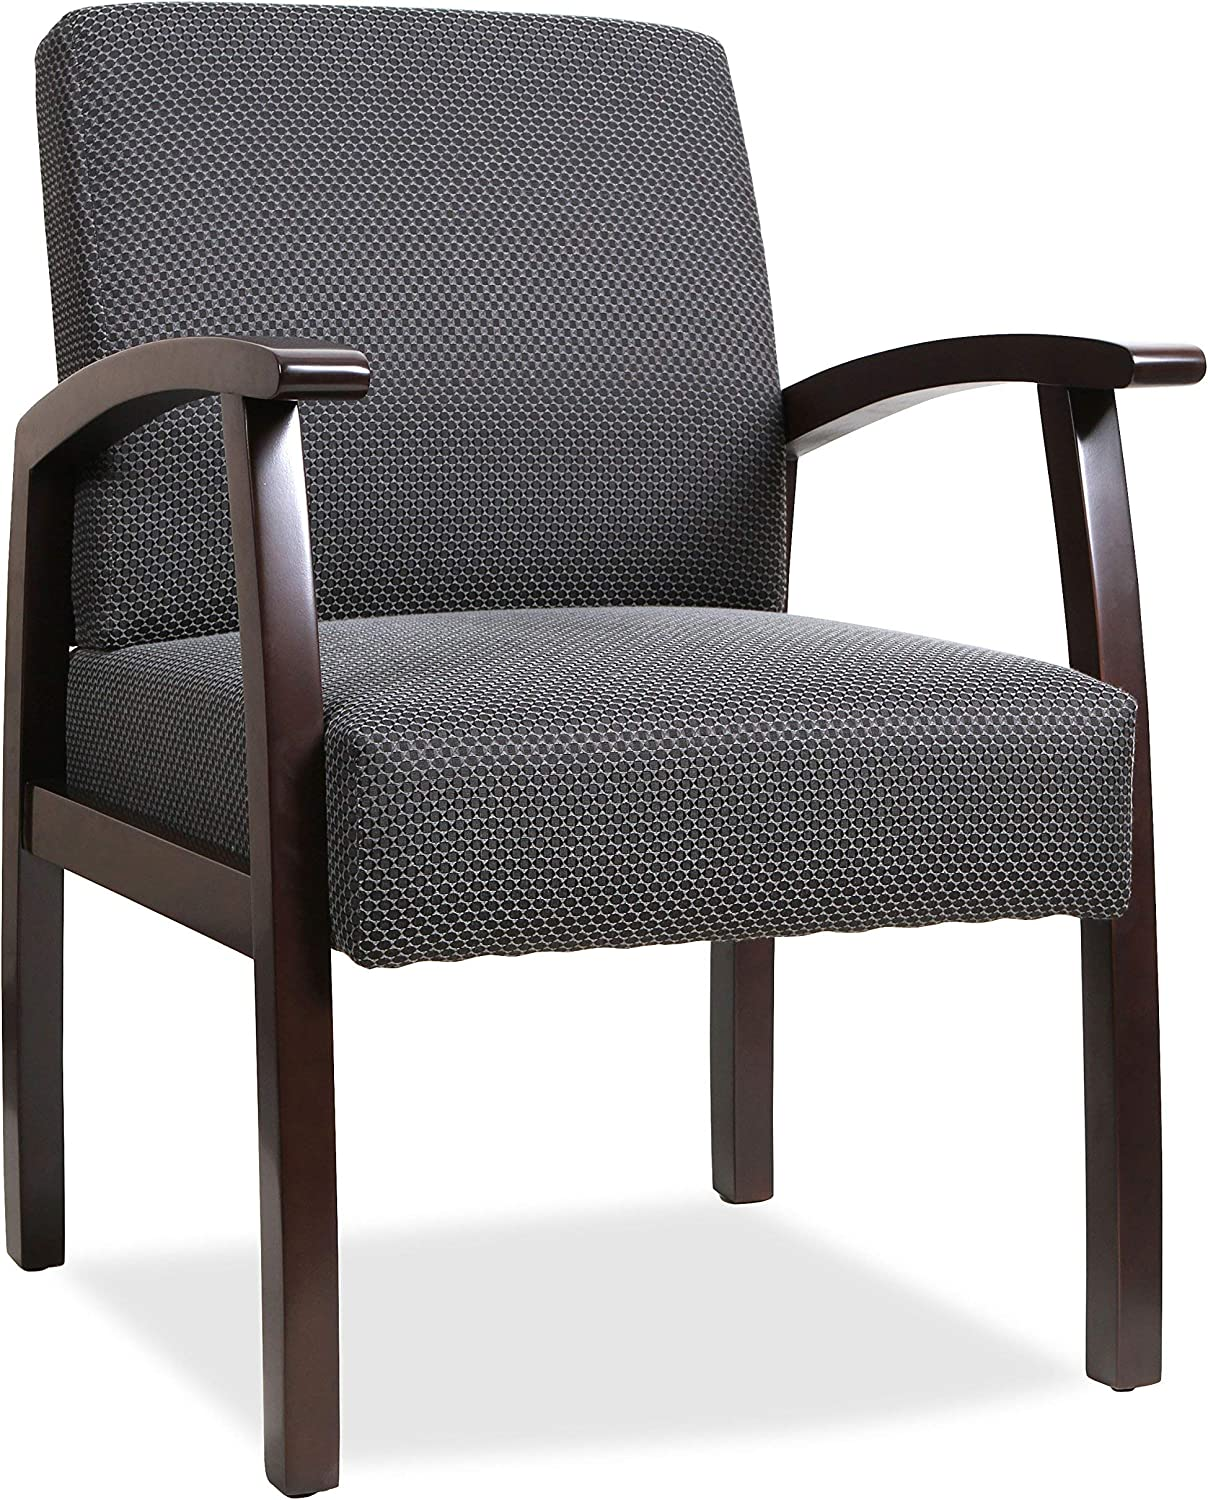 Renewed Lorell Guest Chairs Espresso//Charcoal 24 by 25 by 35-1//2-Inch